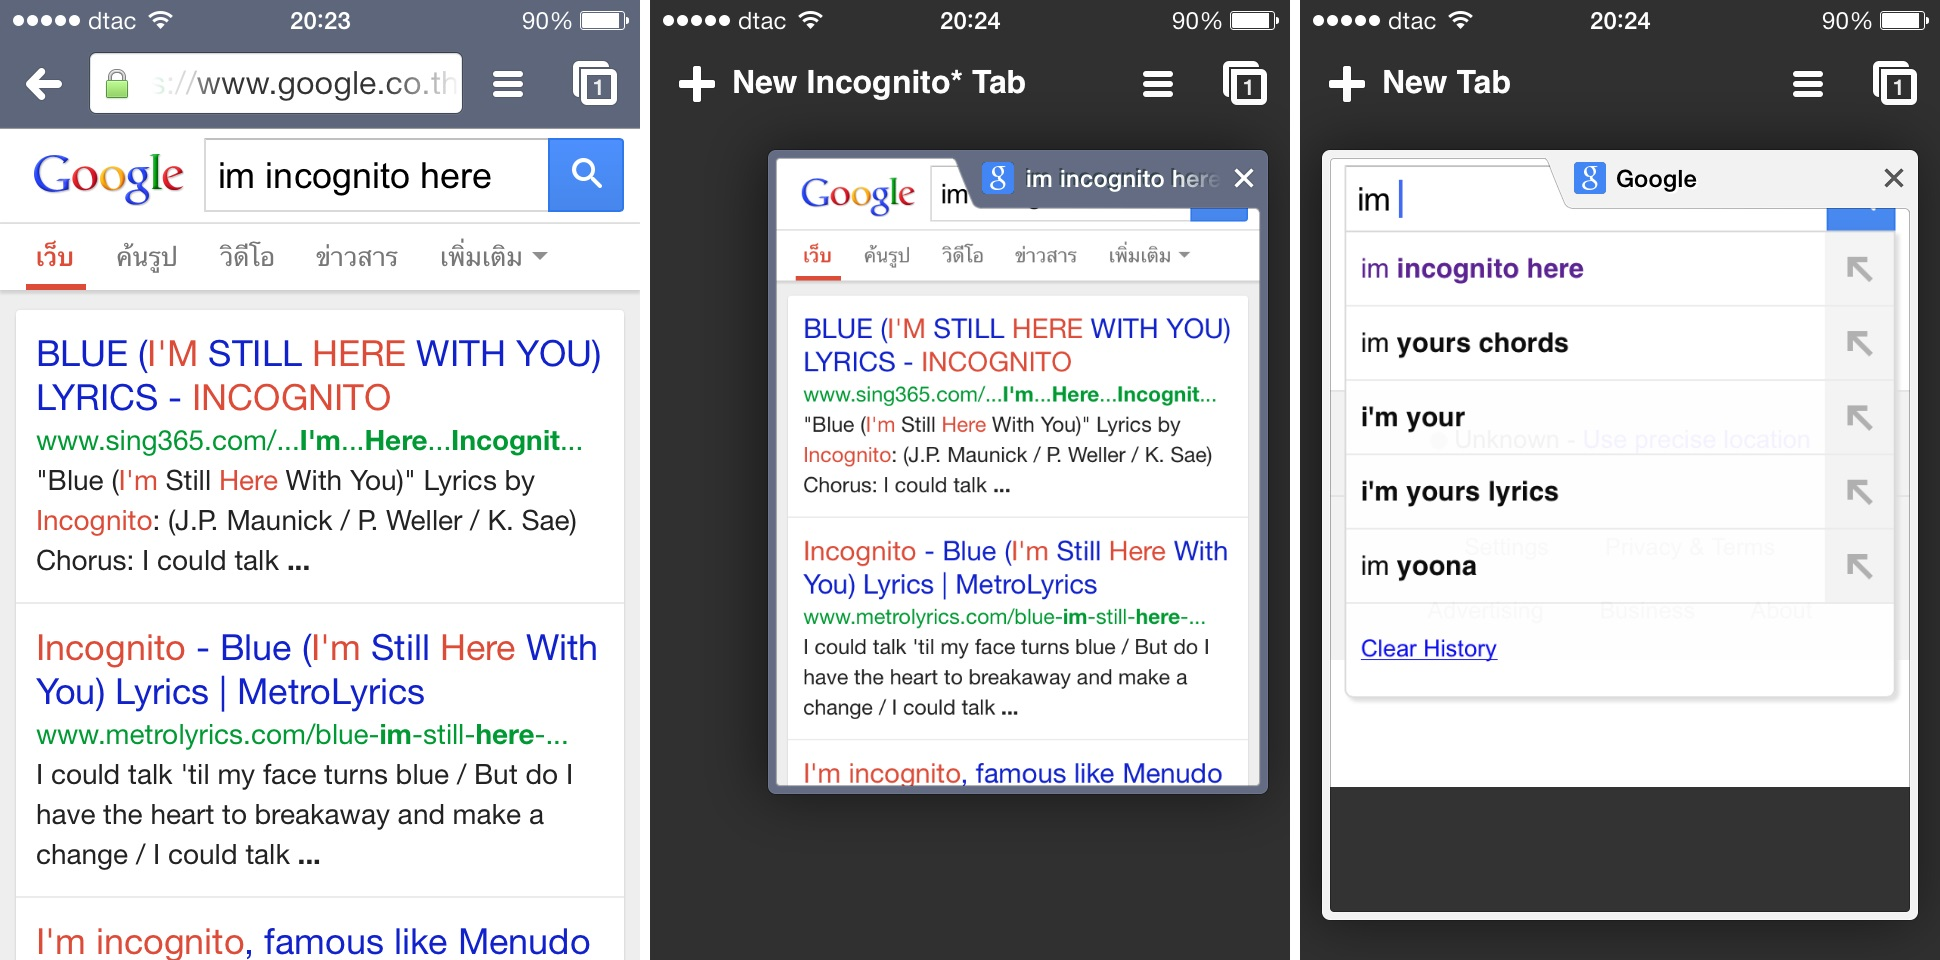 Chrome for iOS is Storing Incognito Google Searches